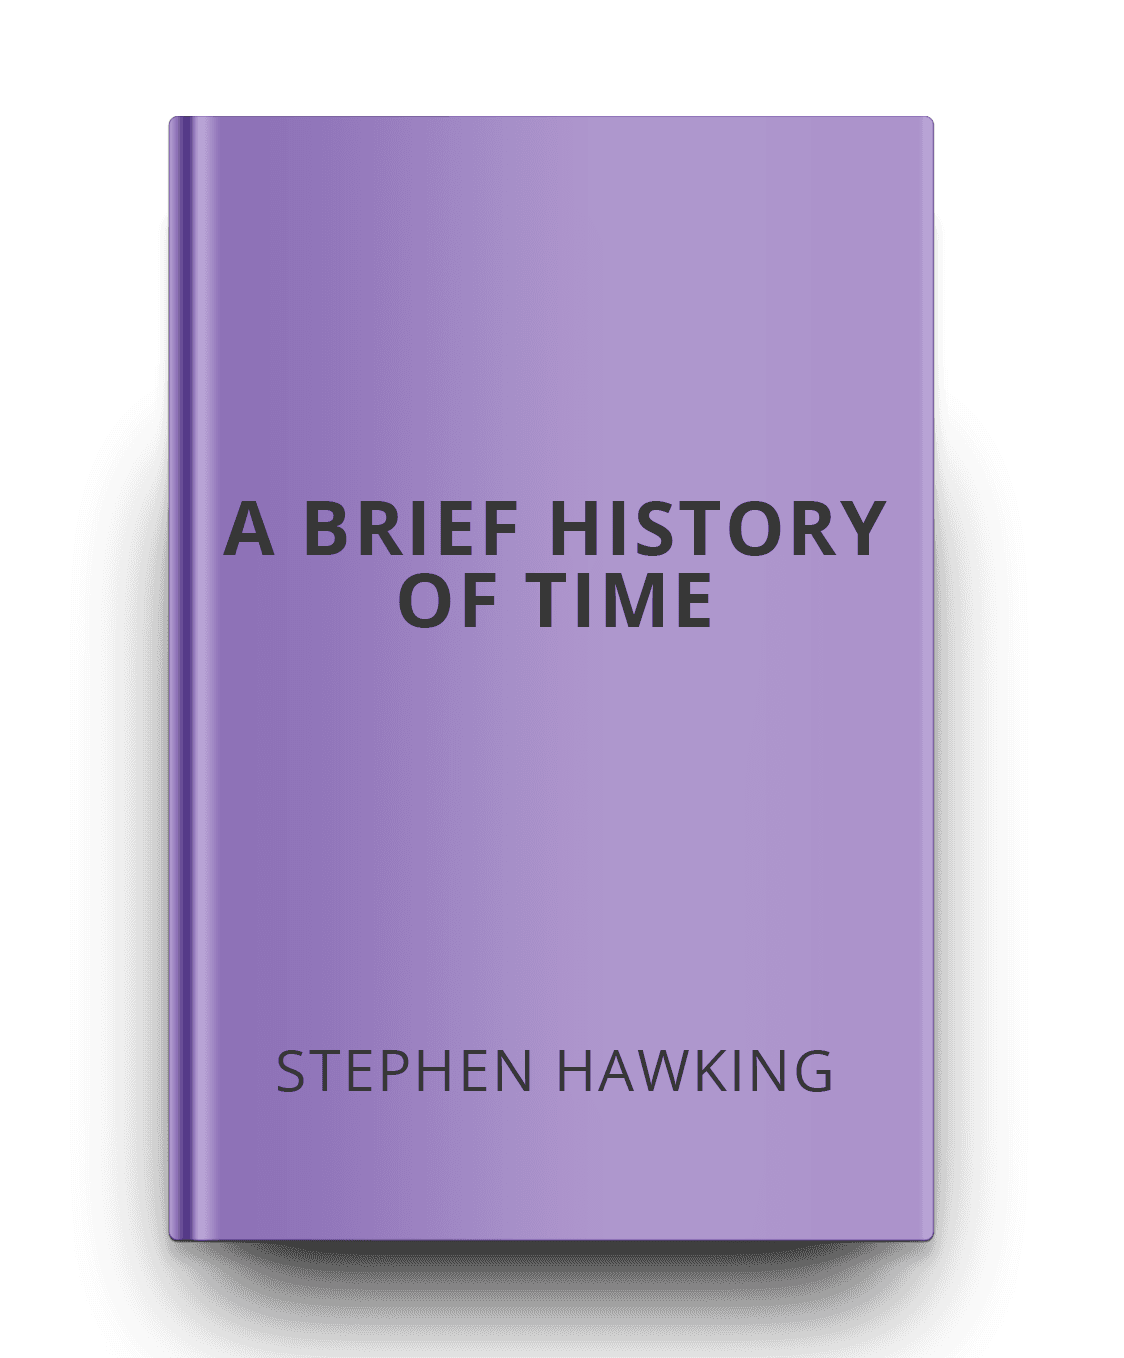 a-brief-history-of-time